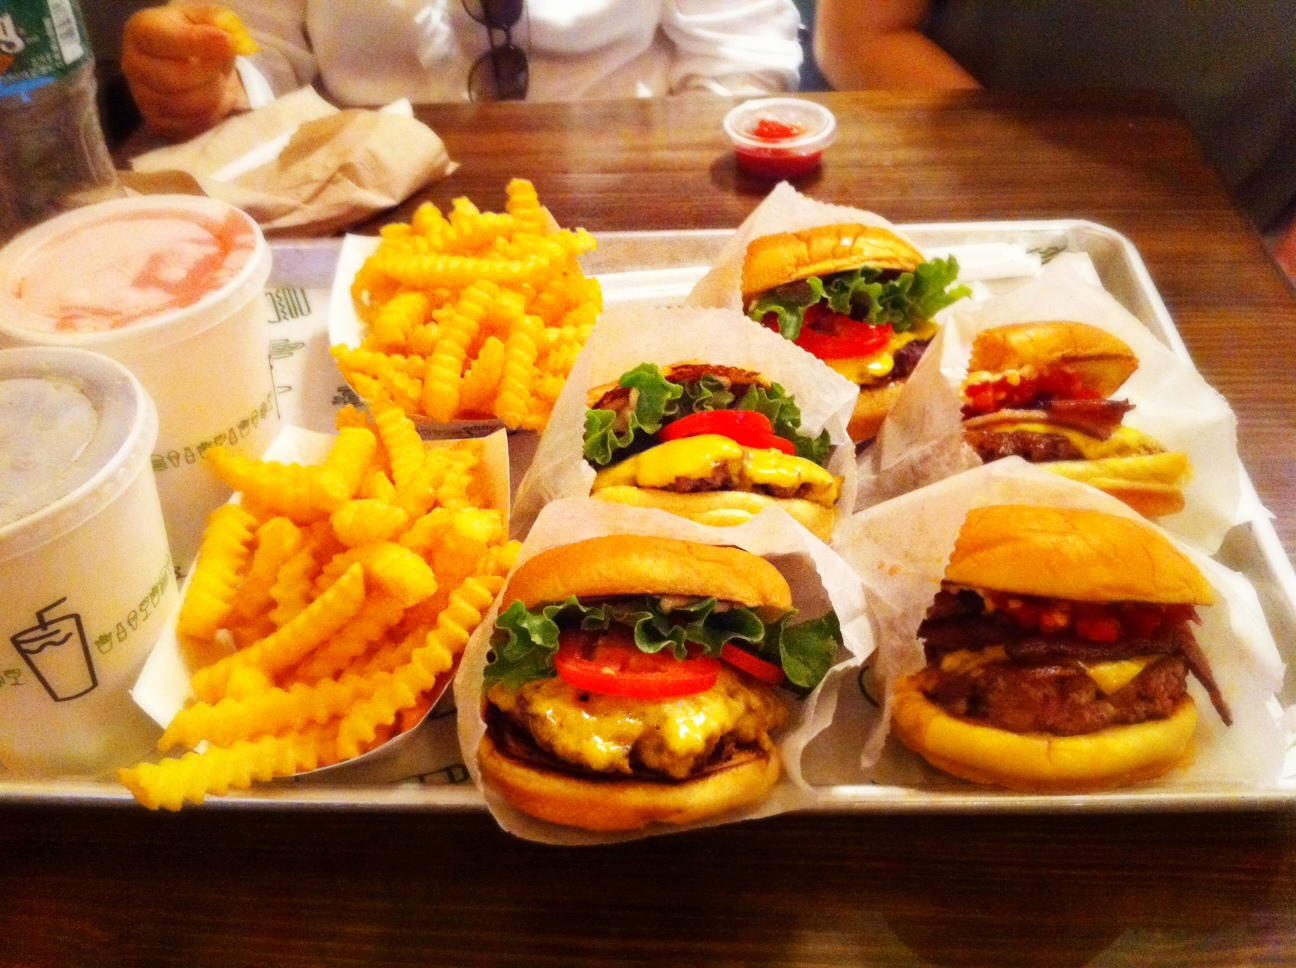 ... love shake shack i tried the smoke shack burger on the right which has